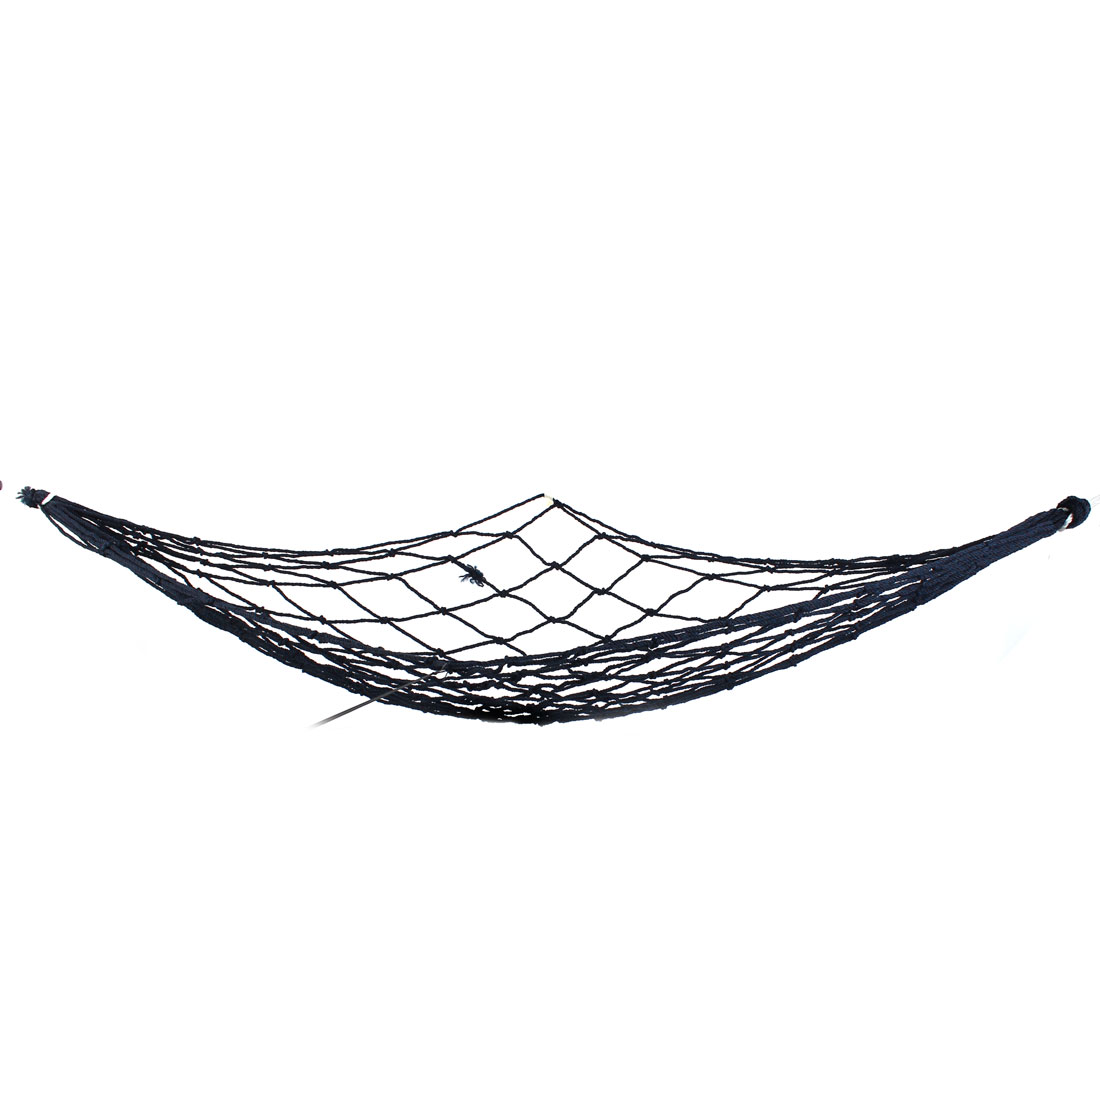 Outdoor Leisure Black Nylon Twisted Meshy Sleeping Bed Hammock 1.8M x 1.7M